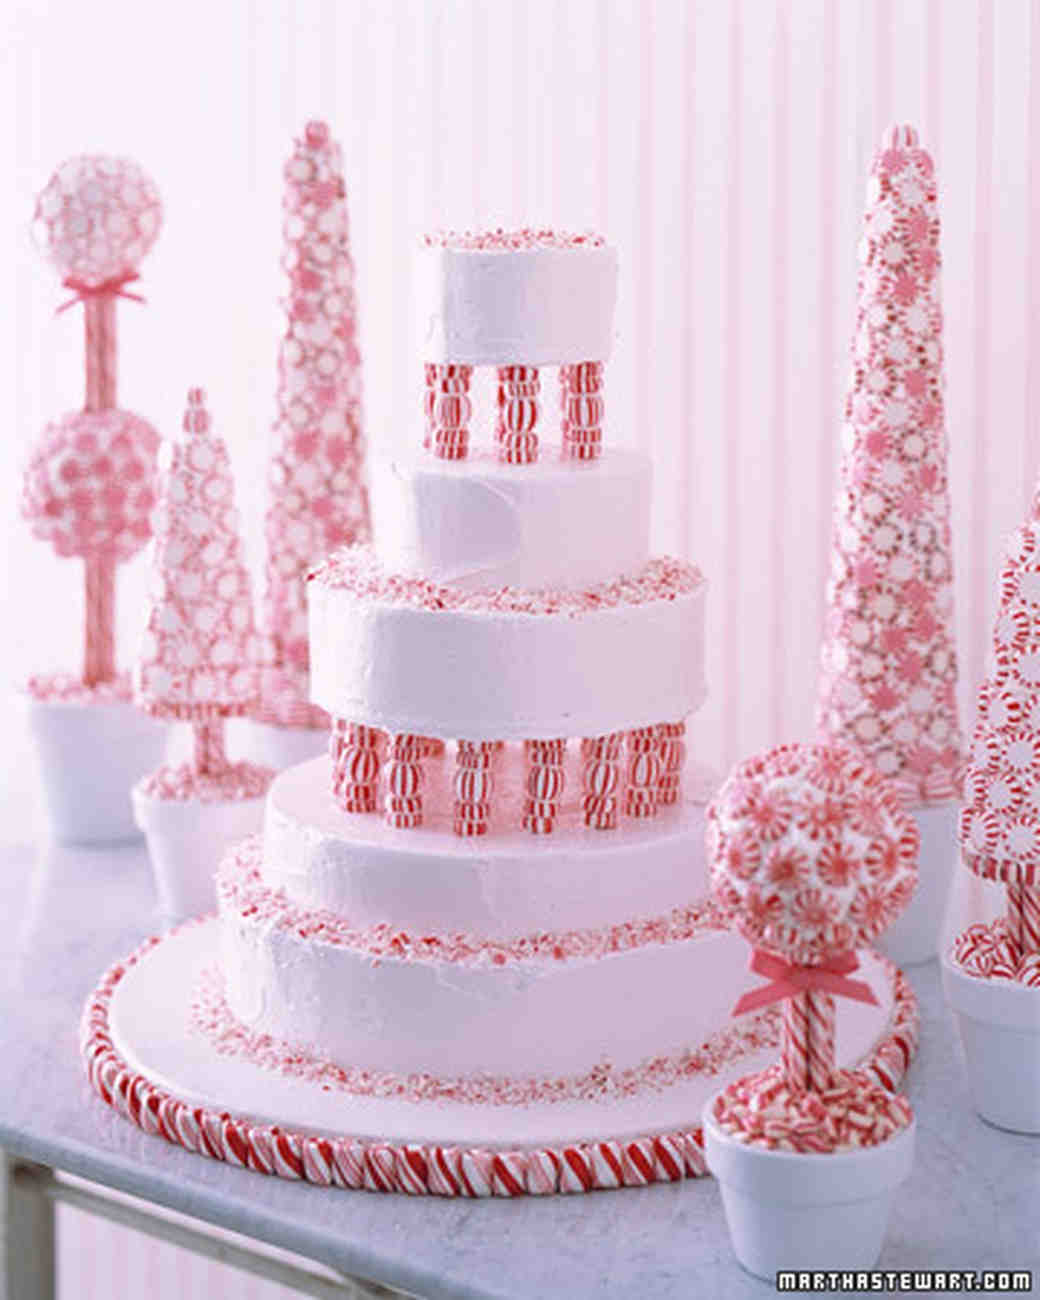 Peppermint Fantasy Cake Recipe | Martha Stewart Weddings